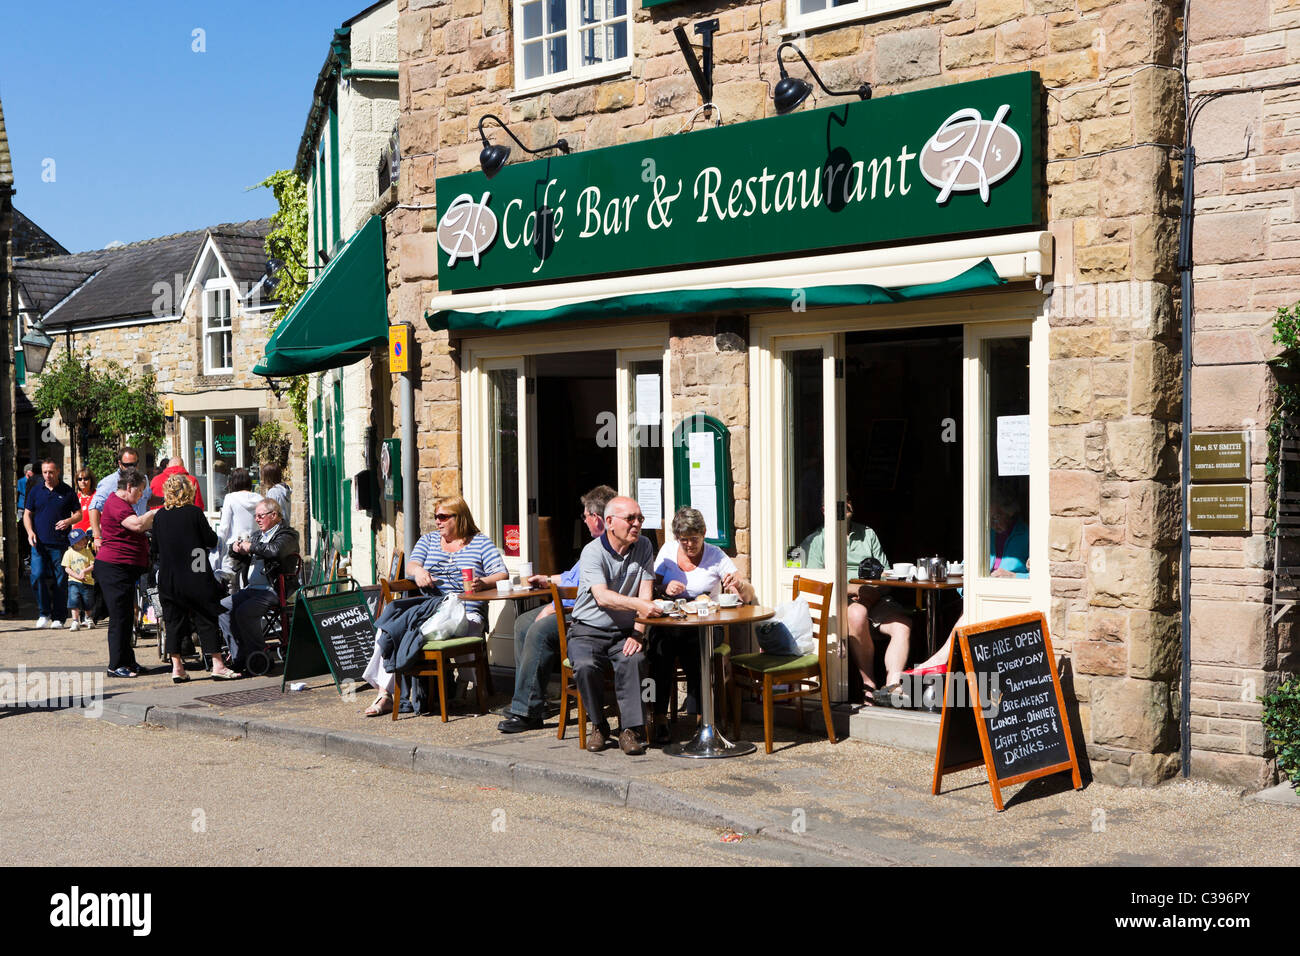 Cafe in the village centre on the early May Bank Holiday weekend, Bakewell, The Peak District, Derbyshire, UK - Stock Image